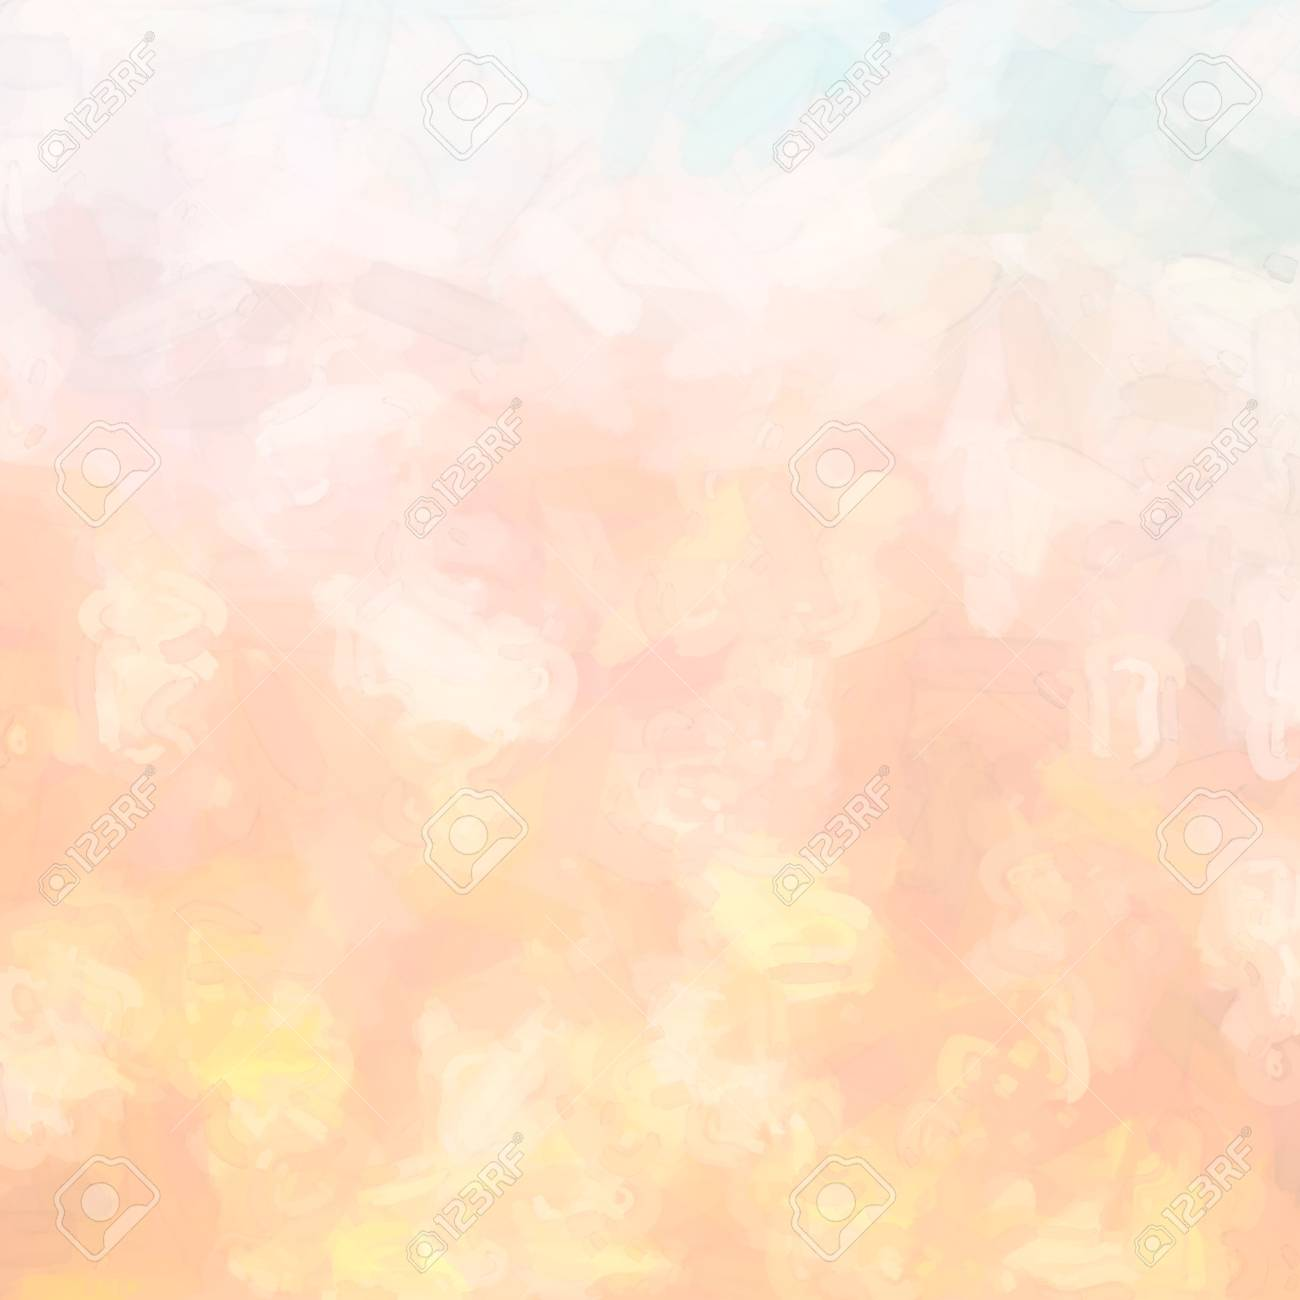 watercolor backdrop art paint background in mixed clors abstract Stock Photo - 18636759